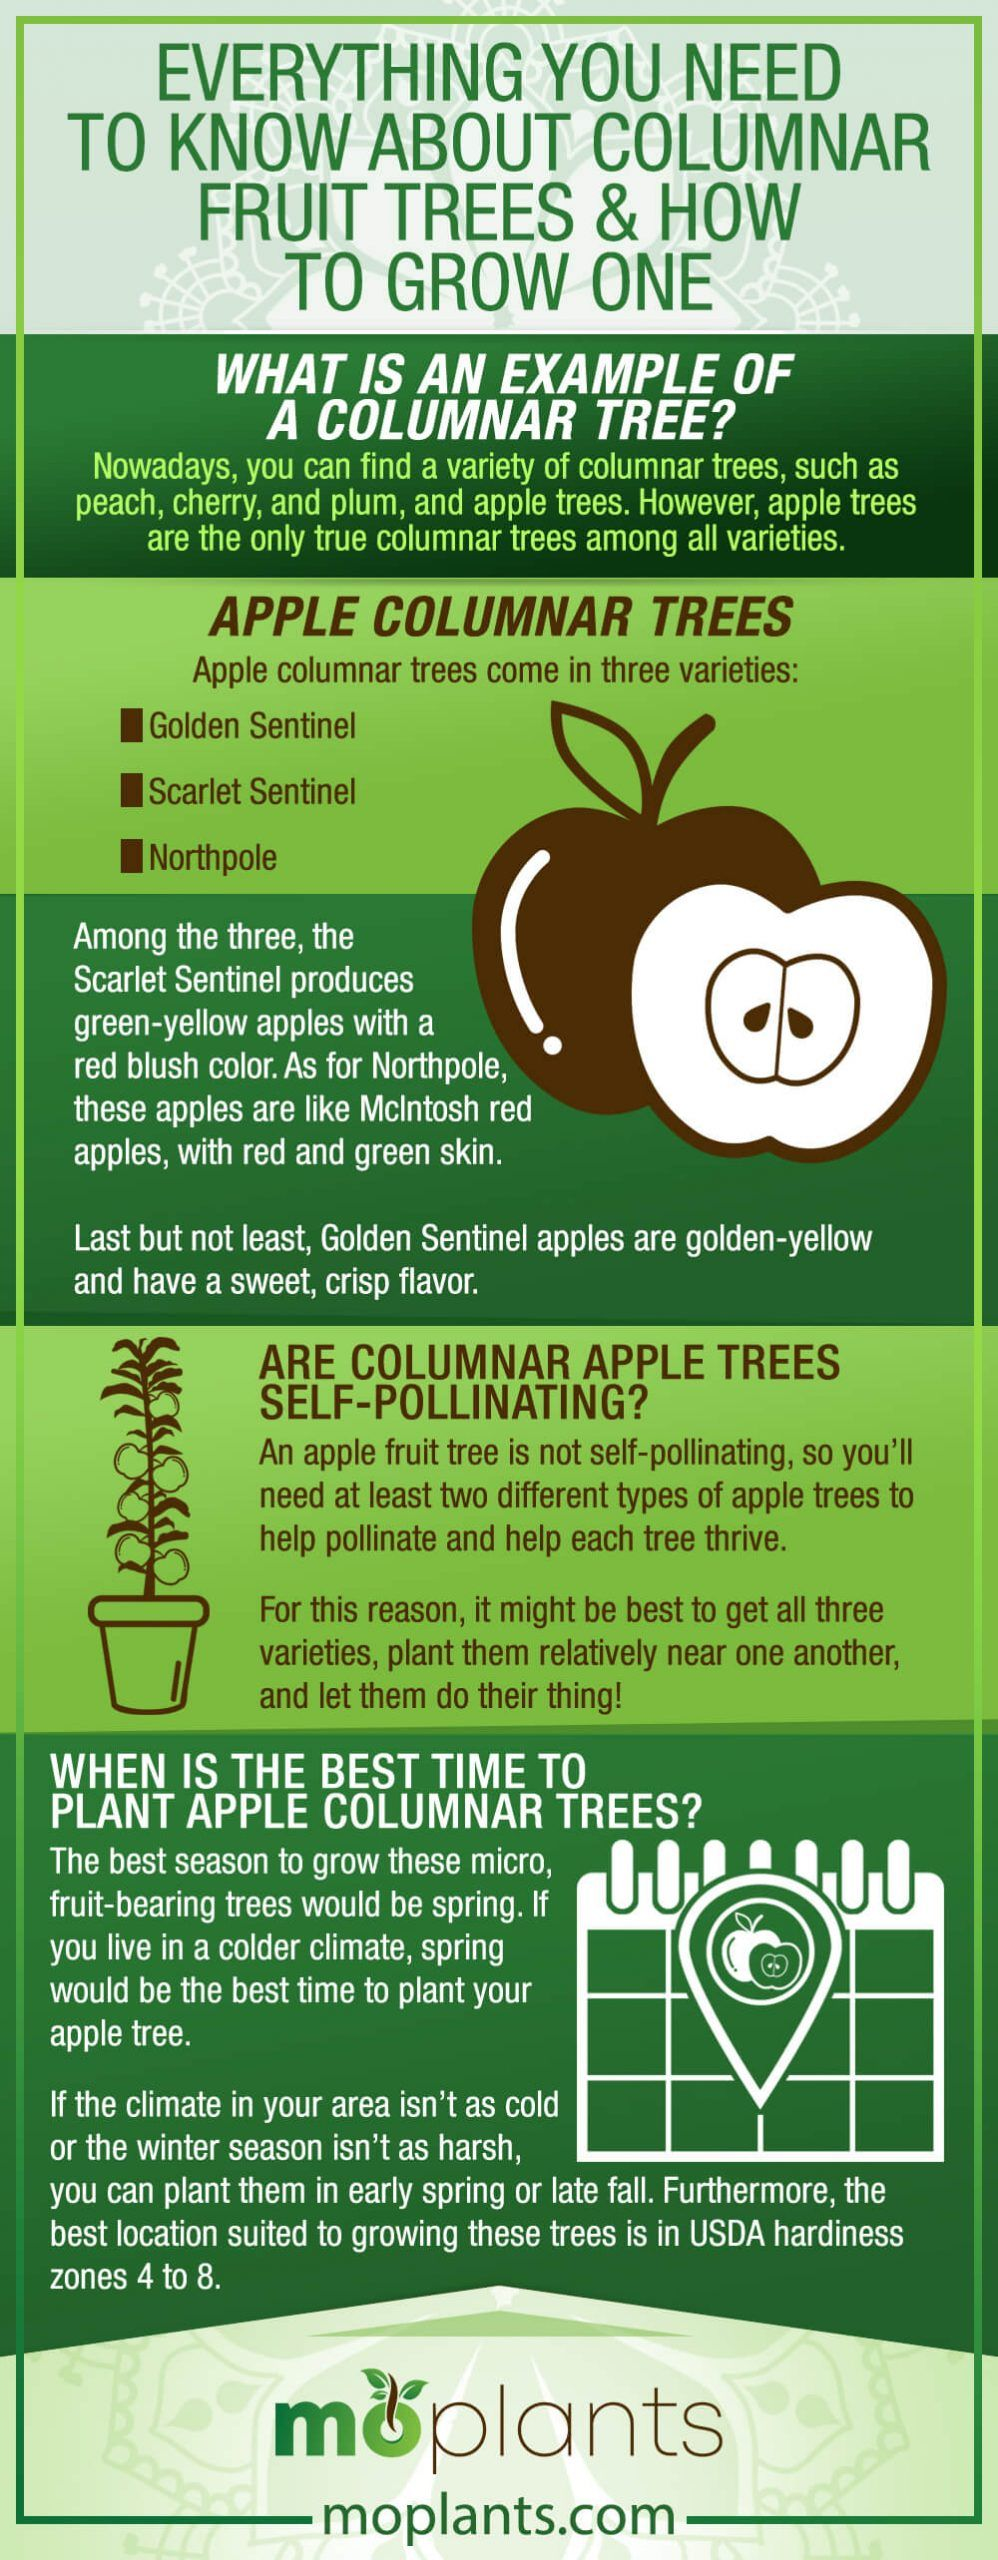 Everything You Need To Know About Columnar Fruit Trees How To Grow One Mo Plants In 2021 Fruit Trees Fruit Bearing Trees Fruit